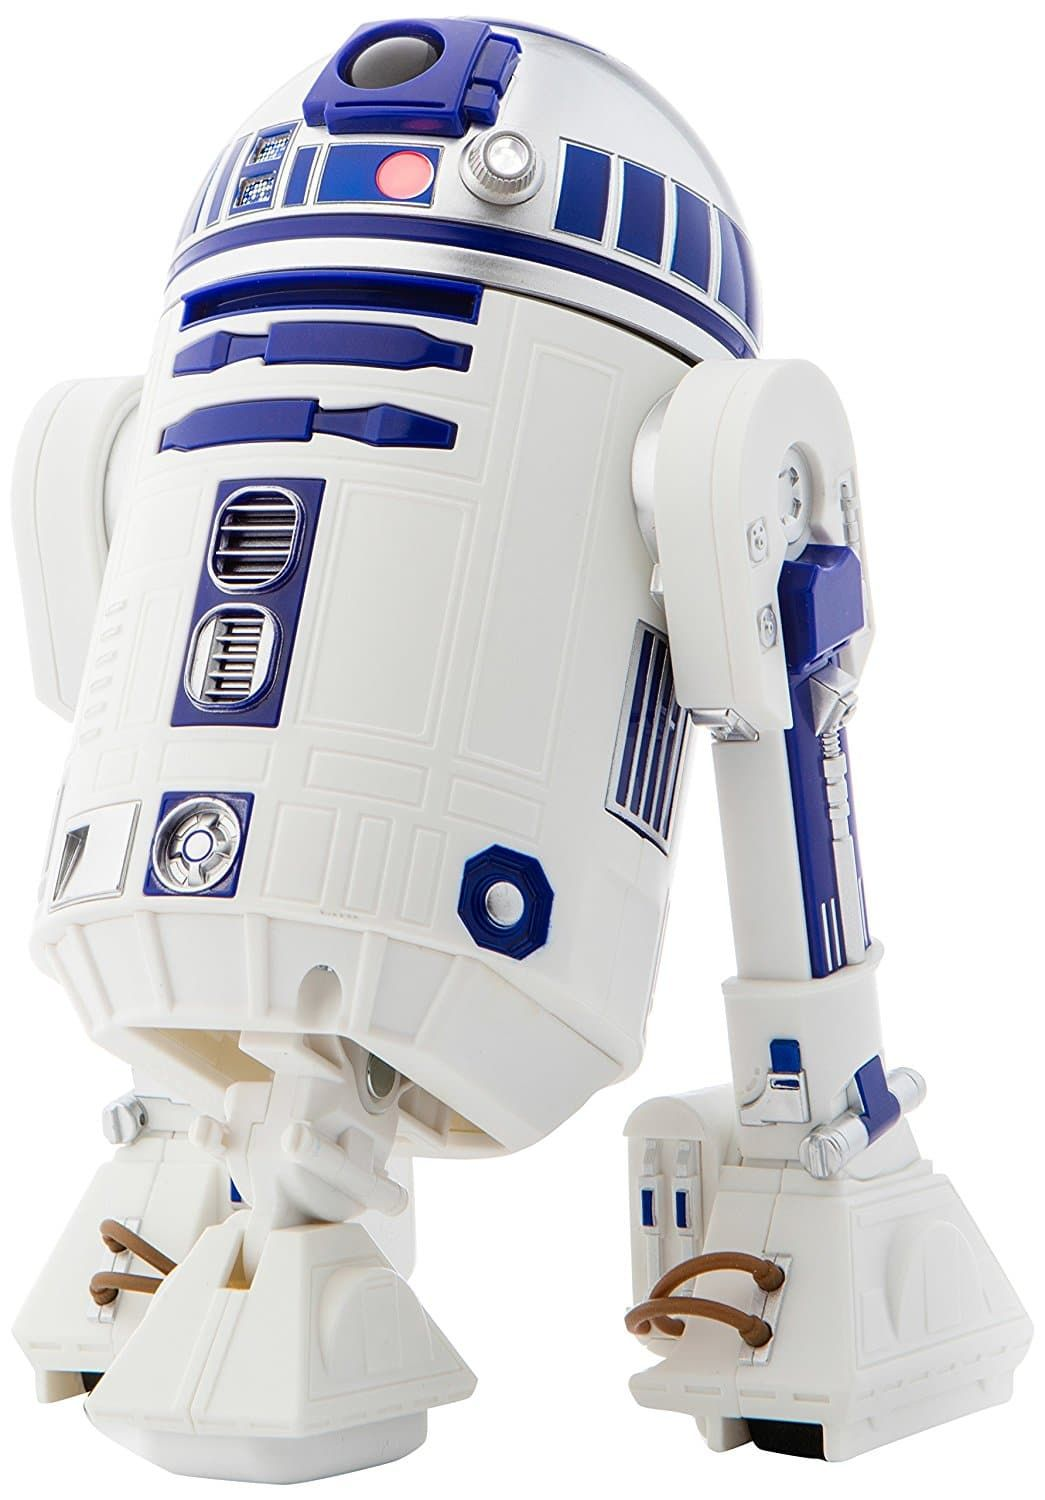 Star Wars R2D2 Robot Smart App Enabled R2-D2 Remote Control Interactive Droid $$